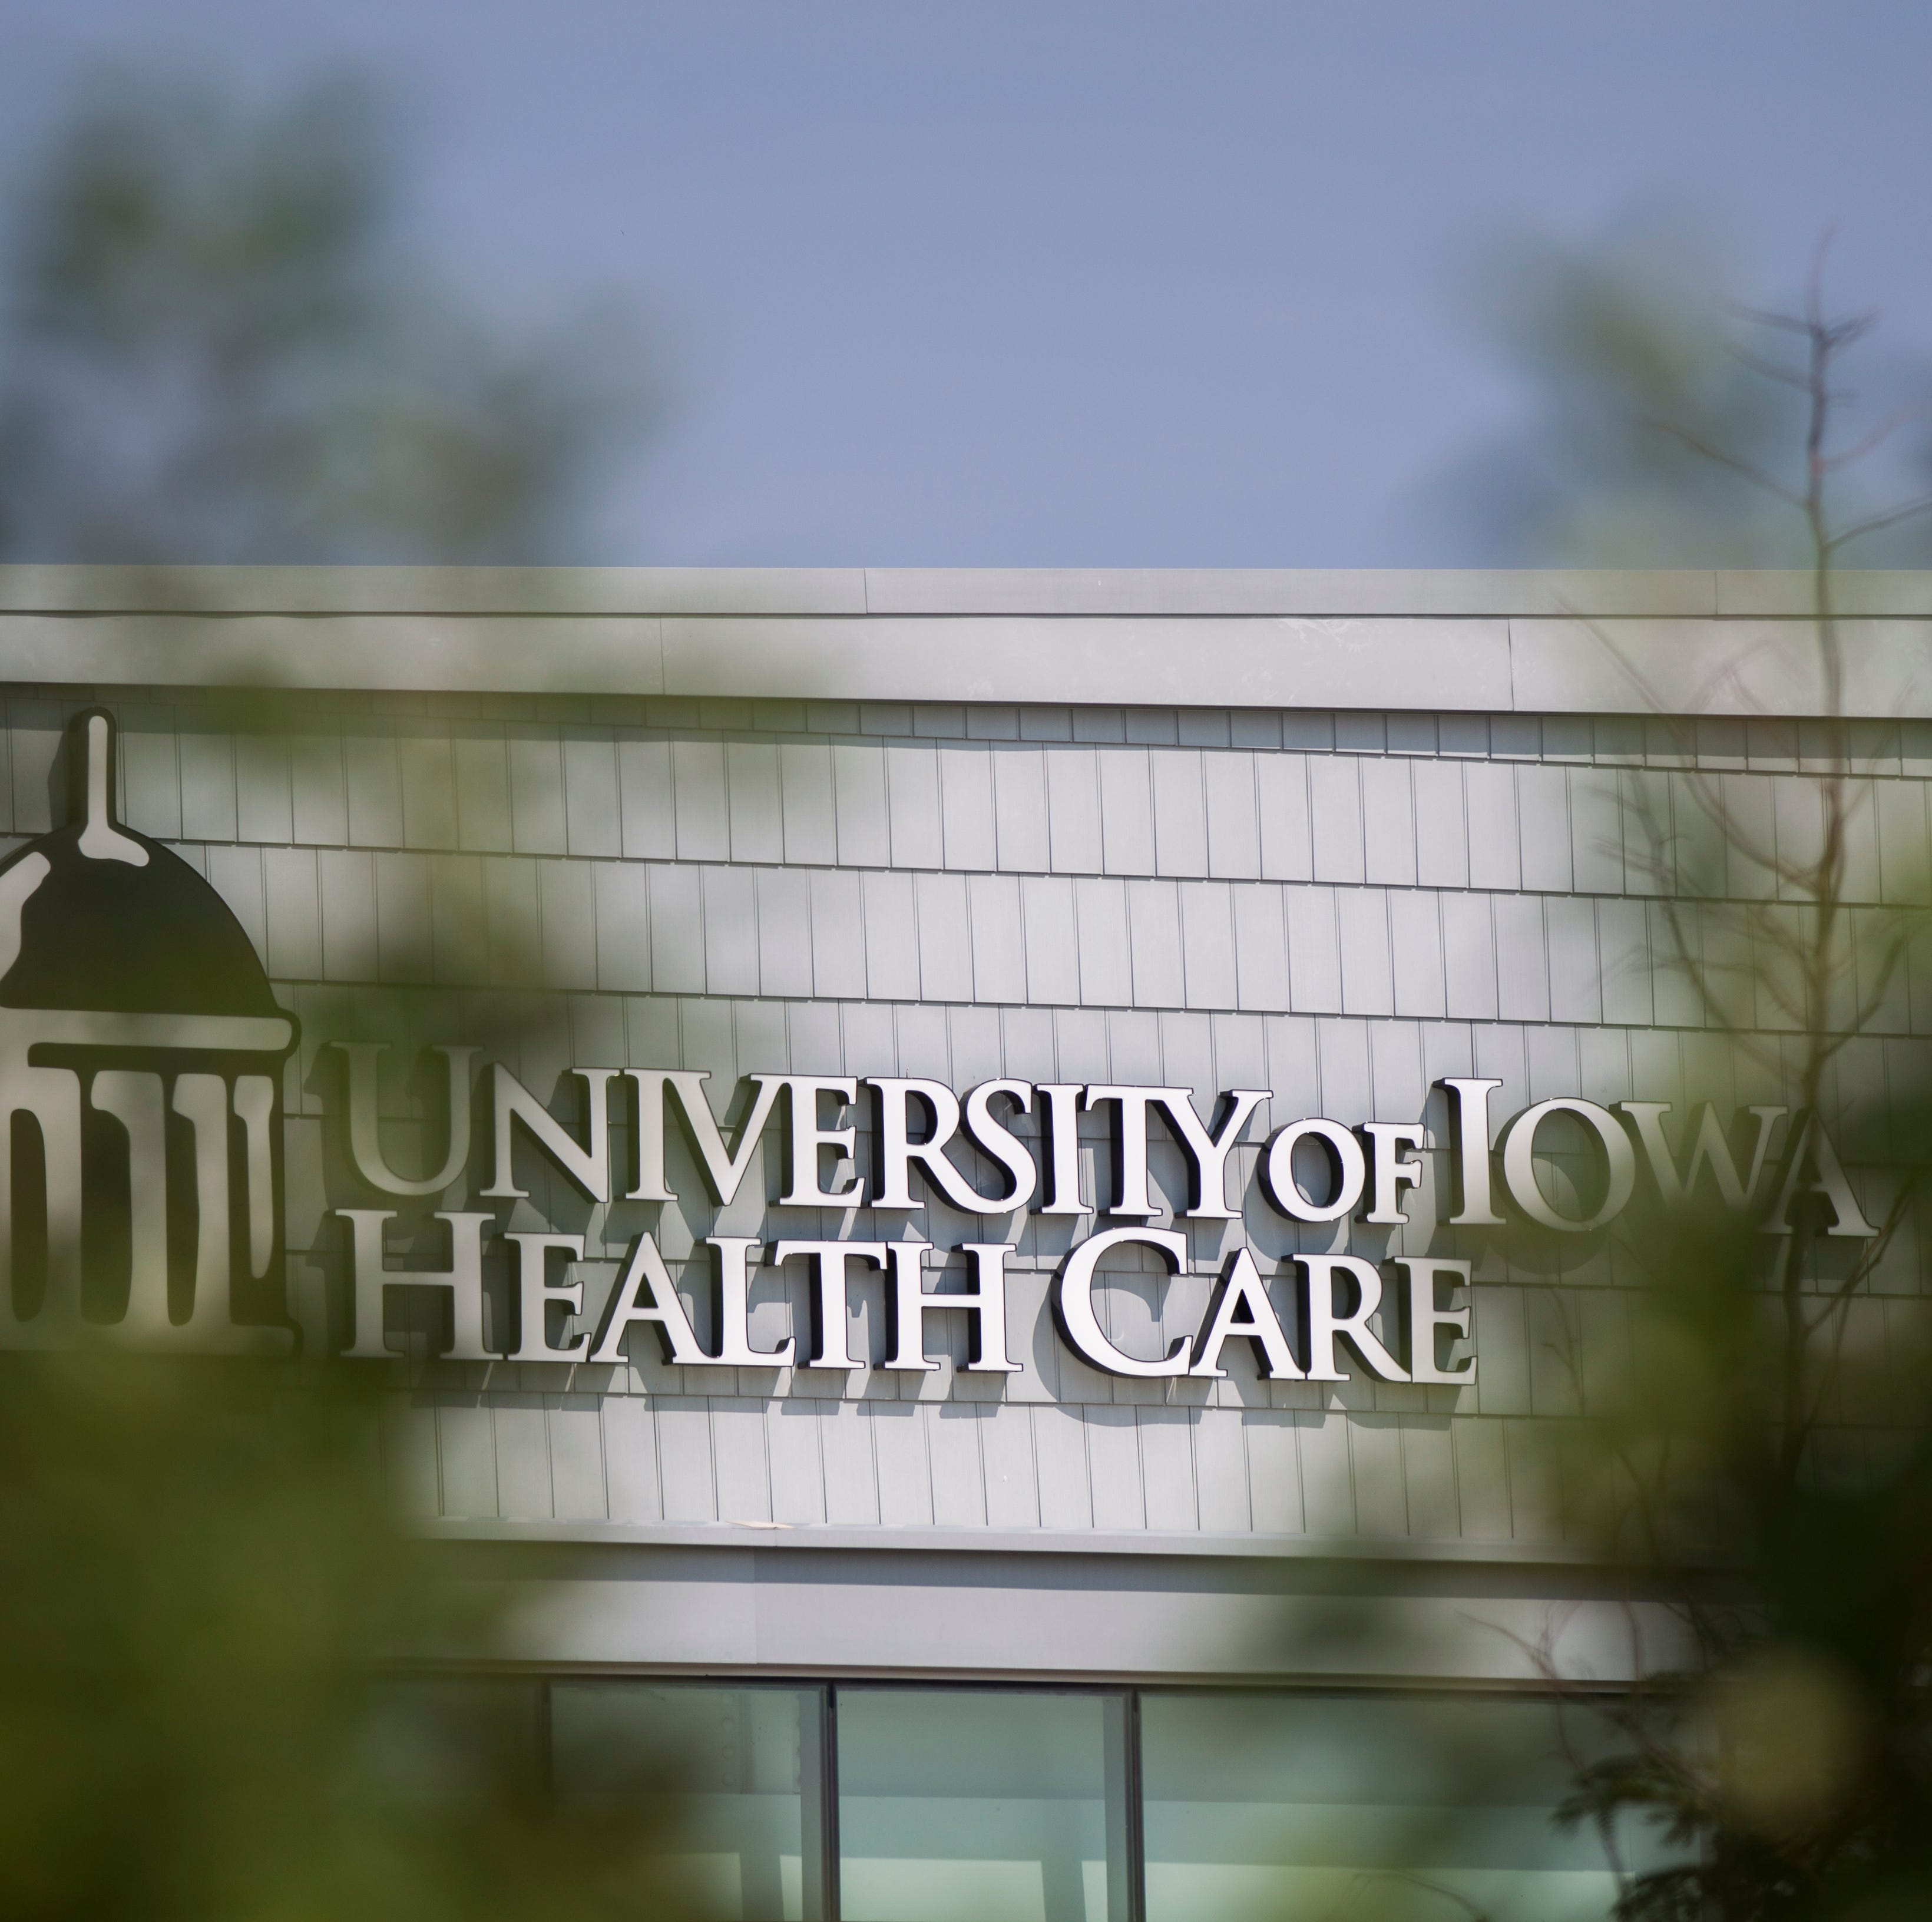 University of Iowa to open second Urgent Care facility in 2020